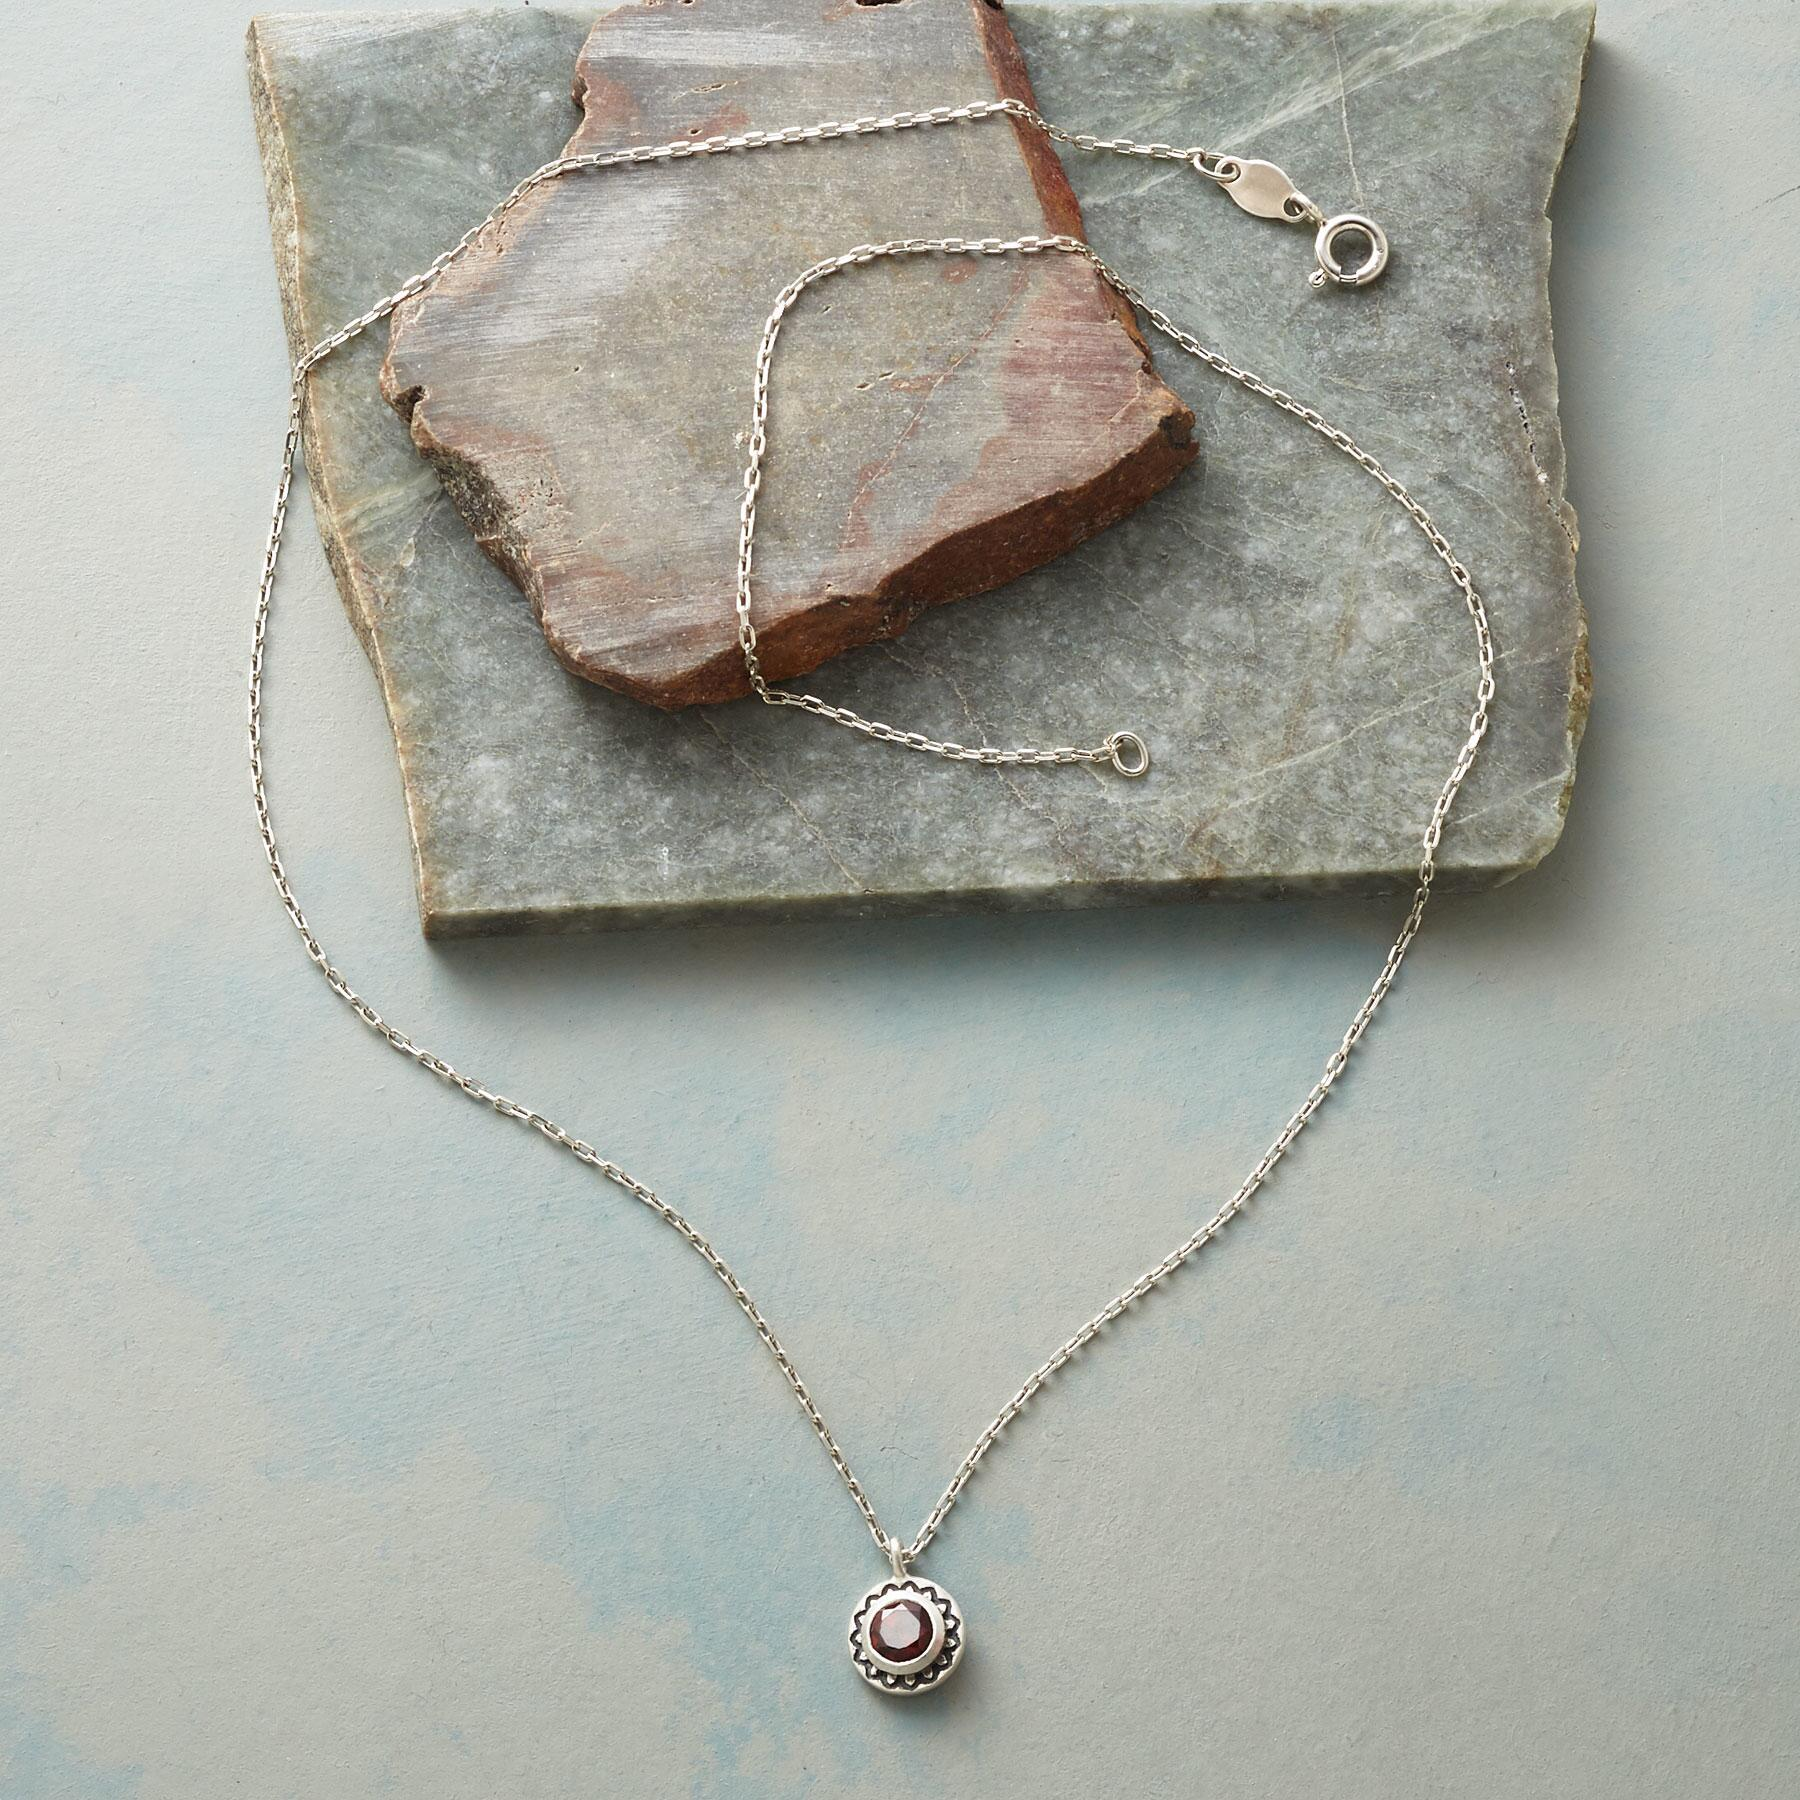 LOTUS BIRTHSTONE NECKLACE: View 2